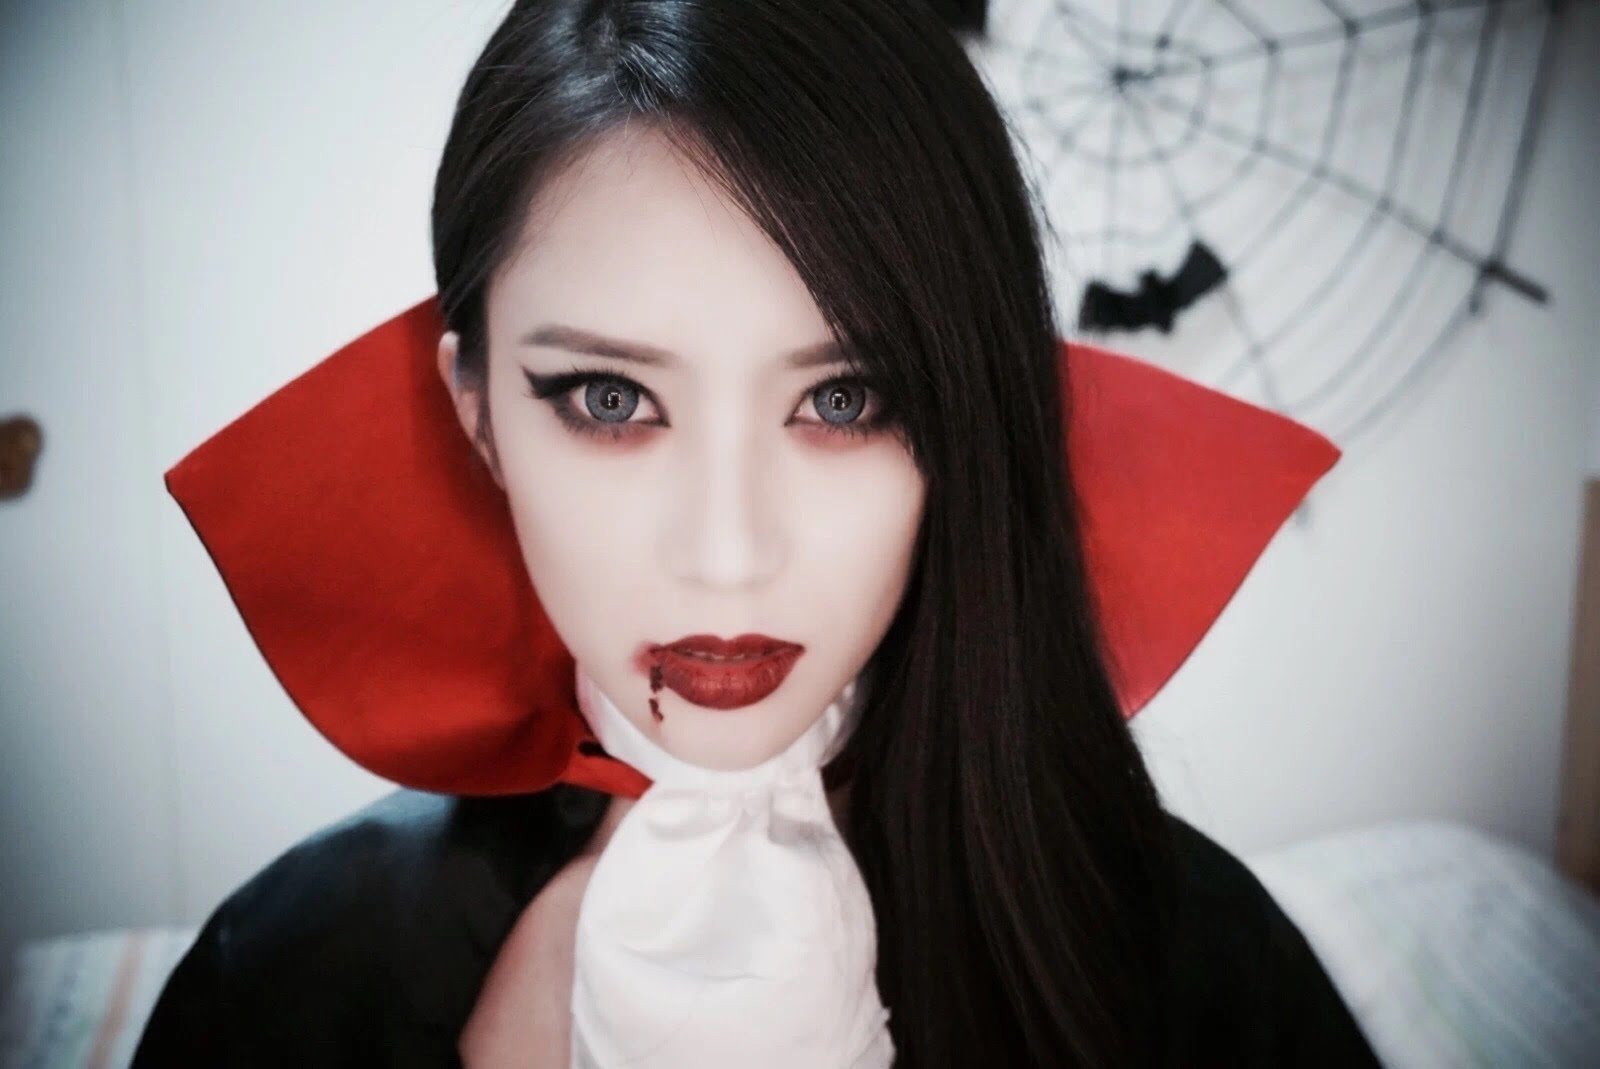 10 Trendy Vampire Makeup Ideas For Women vampire face makeup ideas pretty beautiful sexy scary vampire 2021